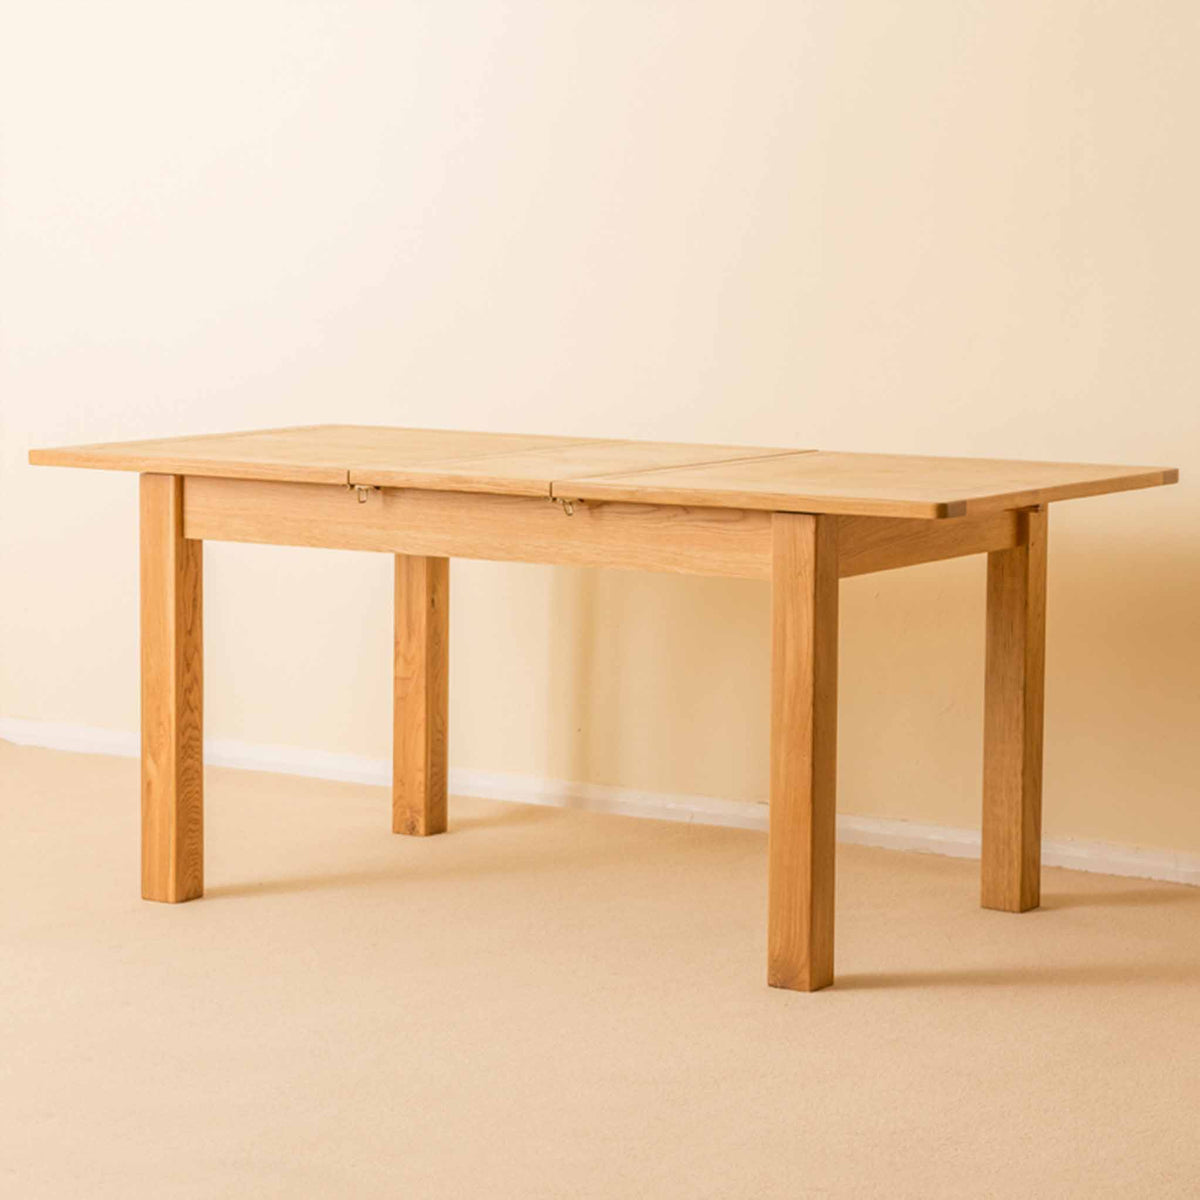 Roseland Oak Extendable Dining Table by Roseland Furniture